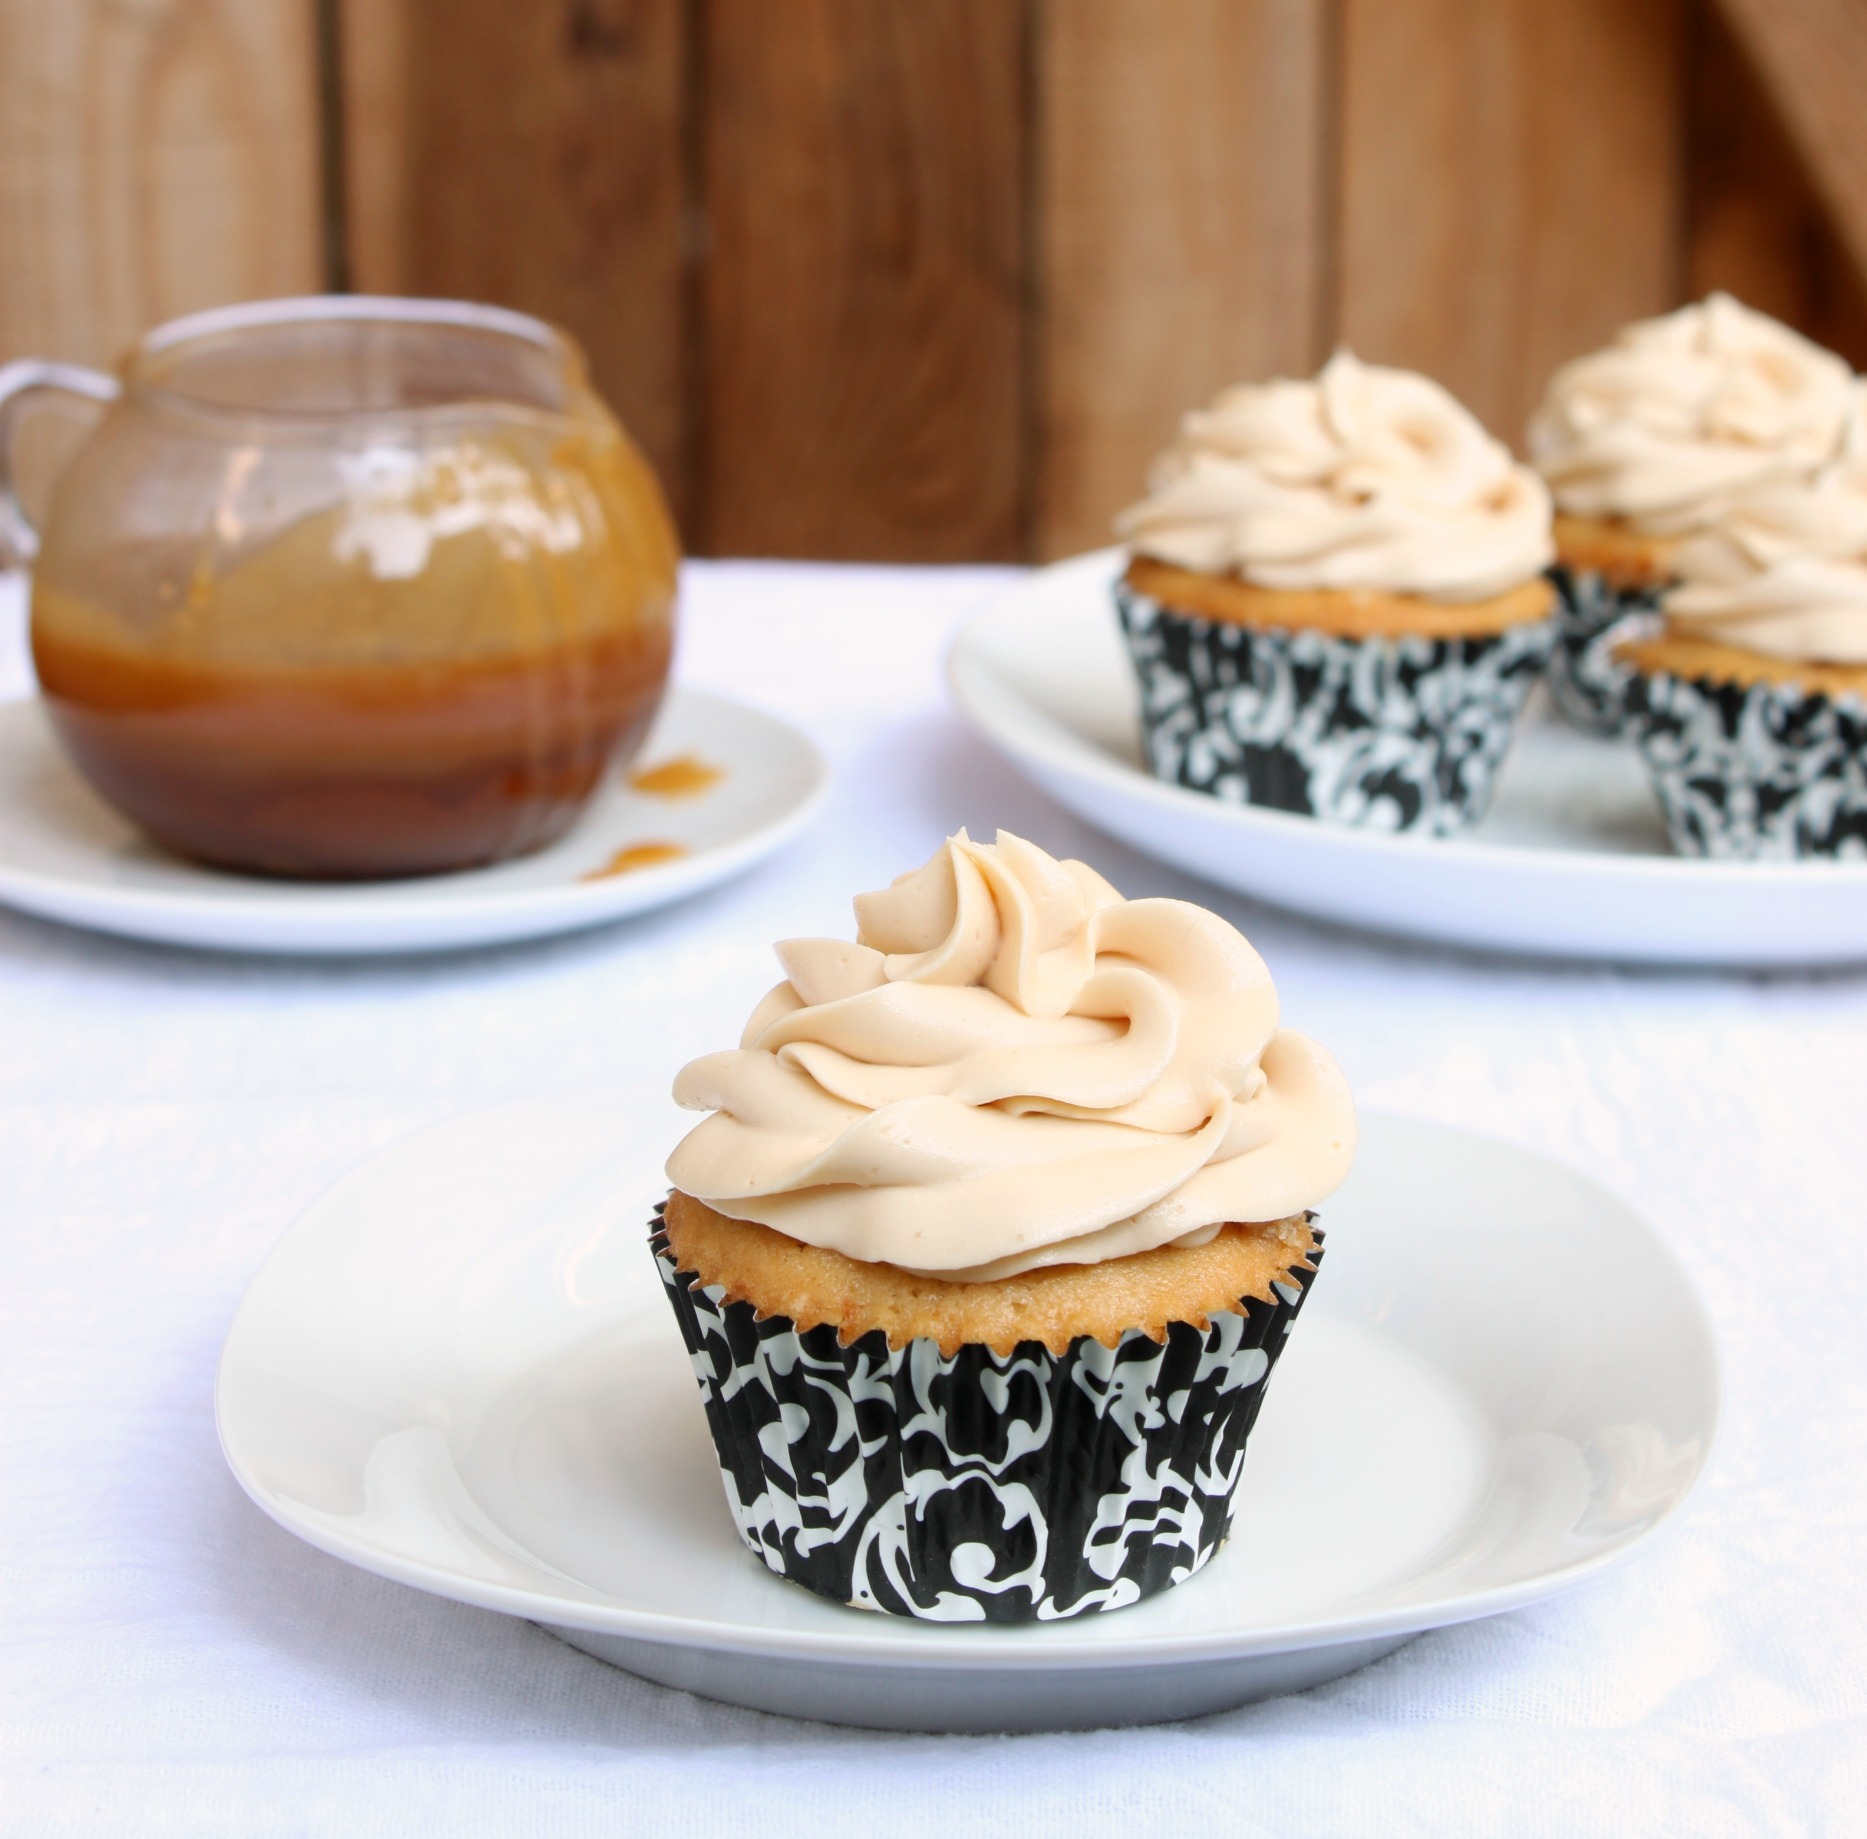 Salted caramel cupcakes 1 cropped